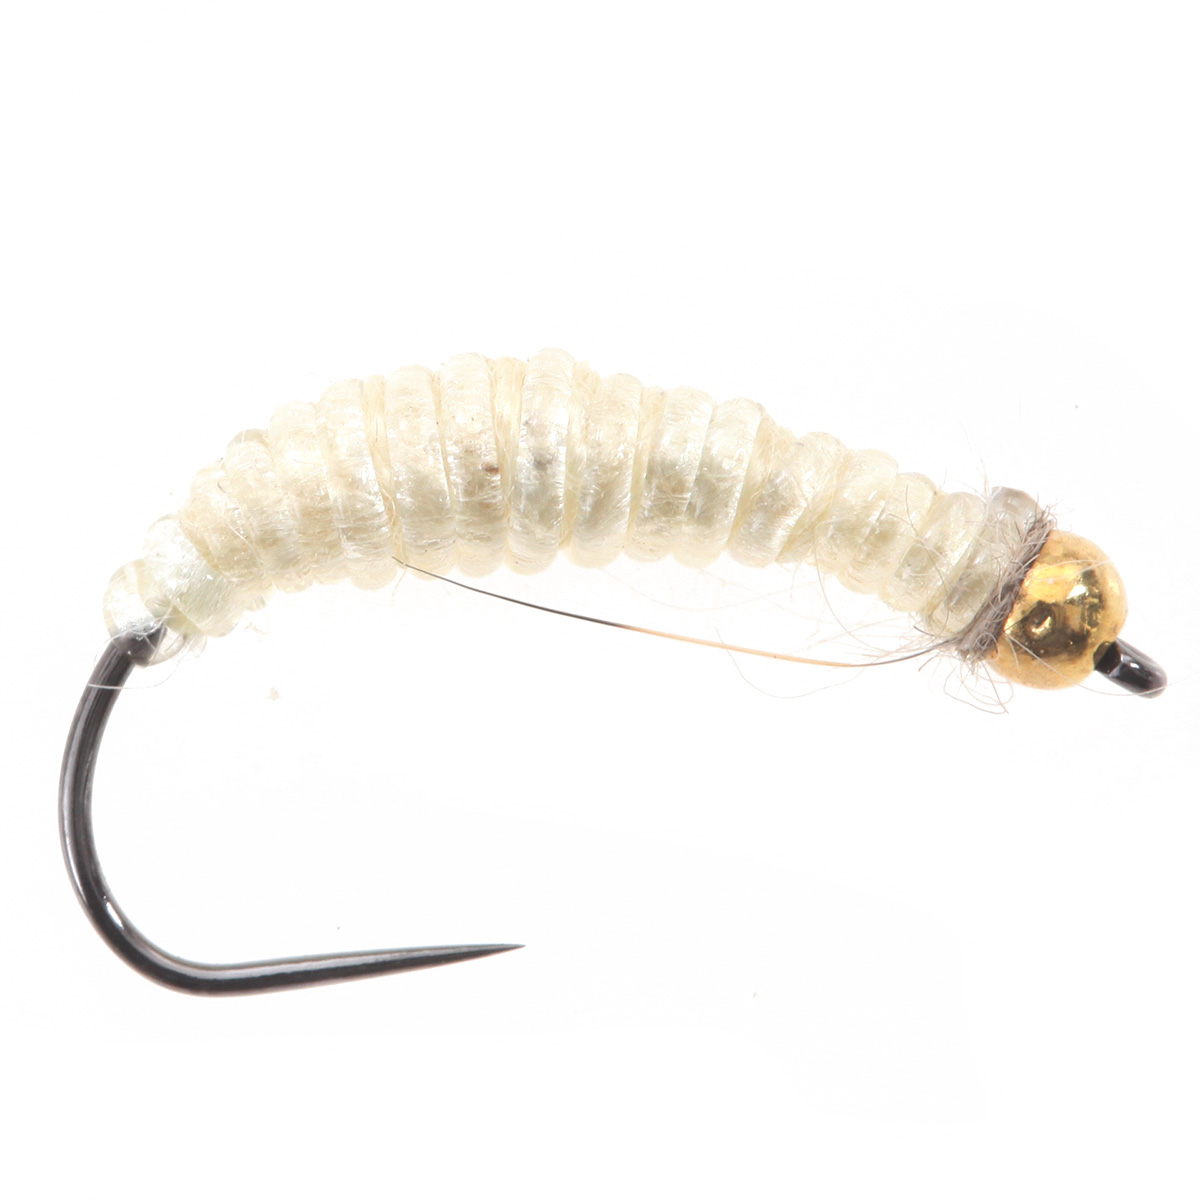 Tungsten BH Case Free Caddis Cream